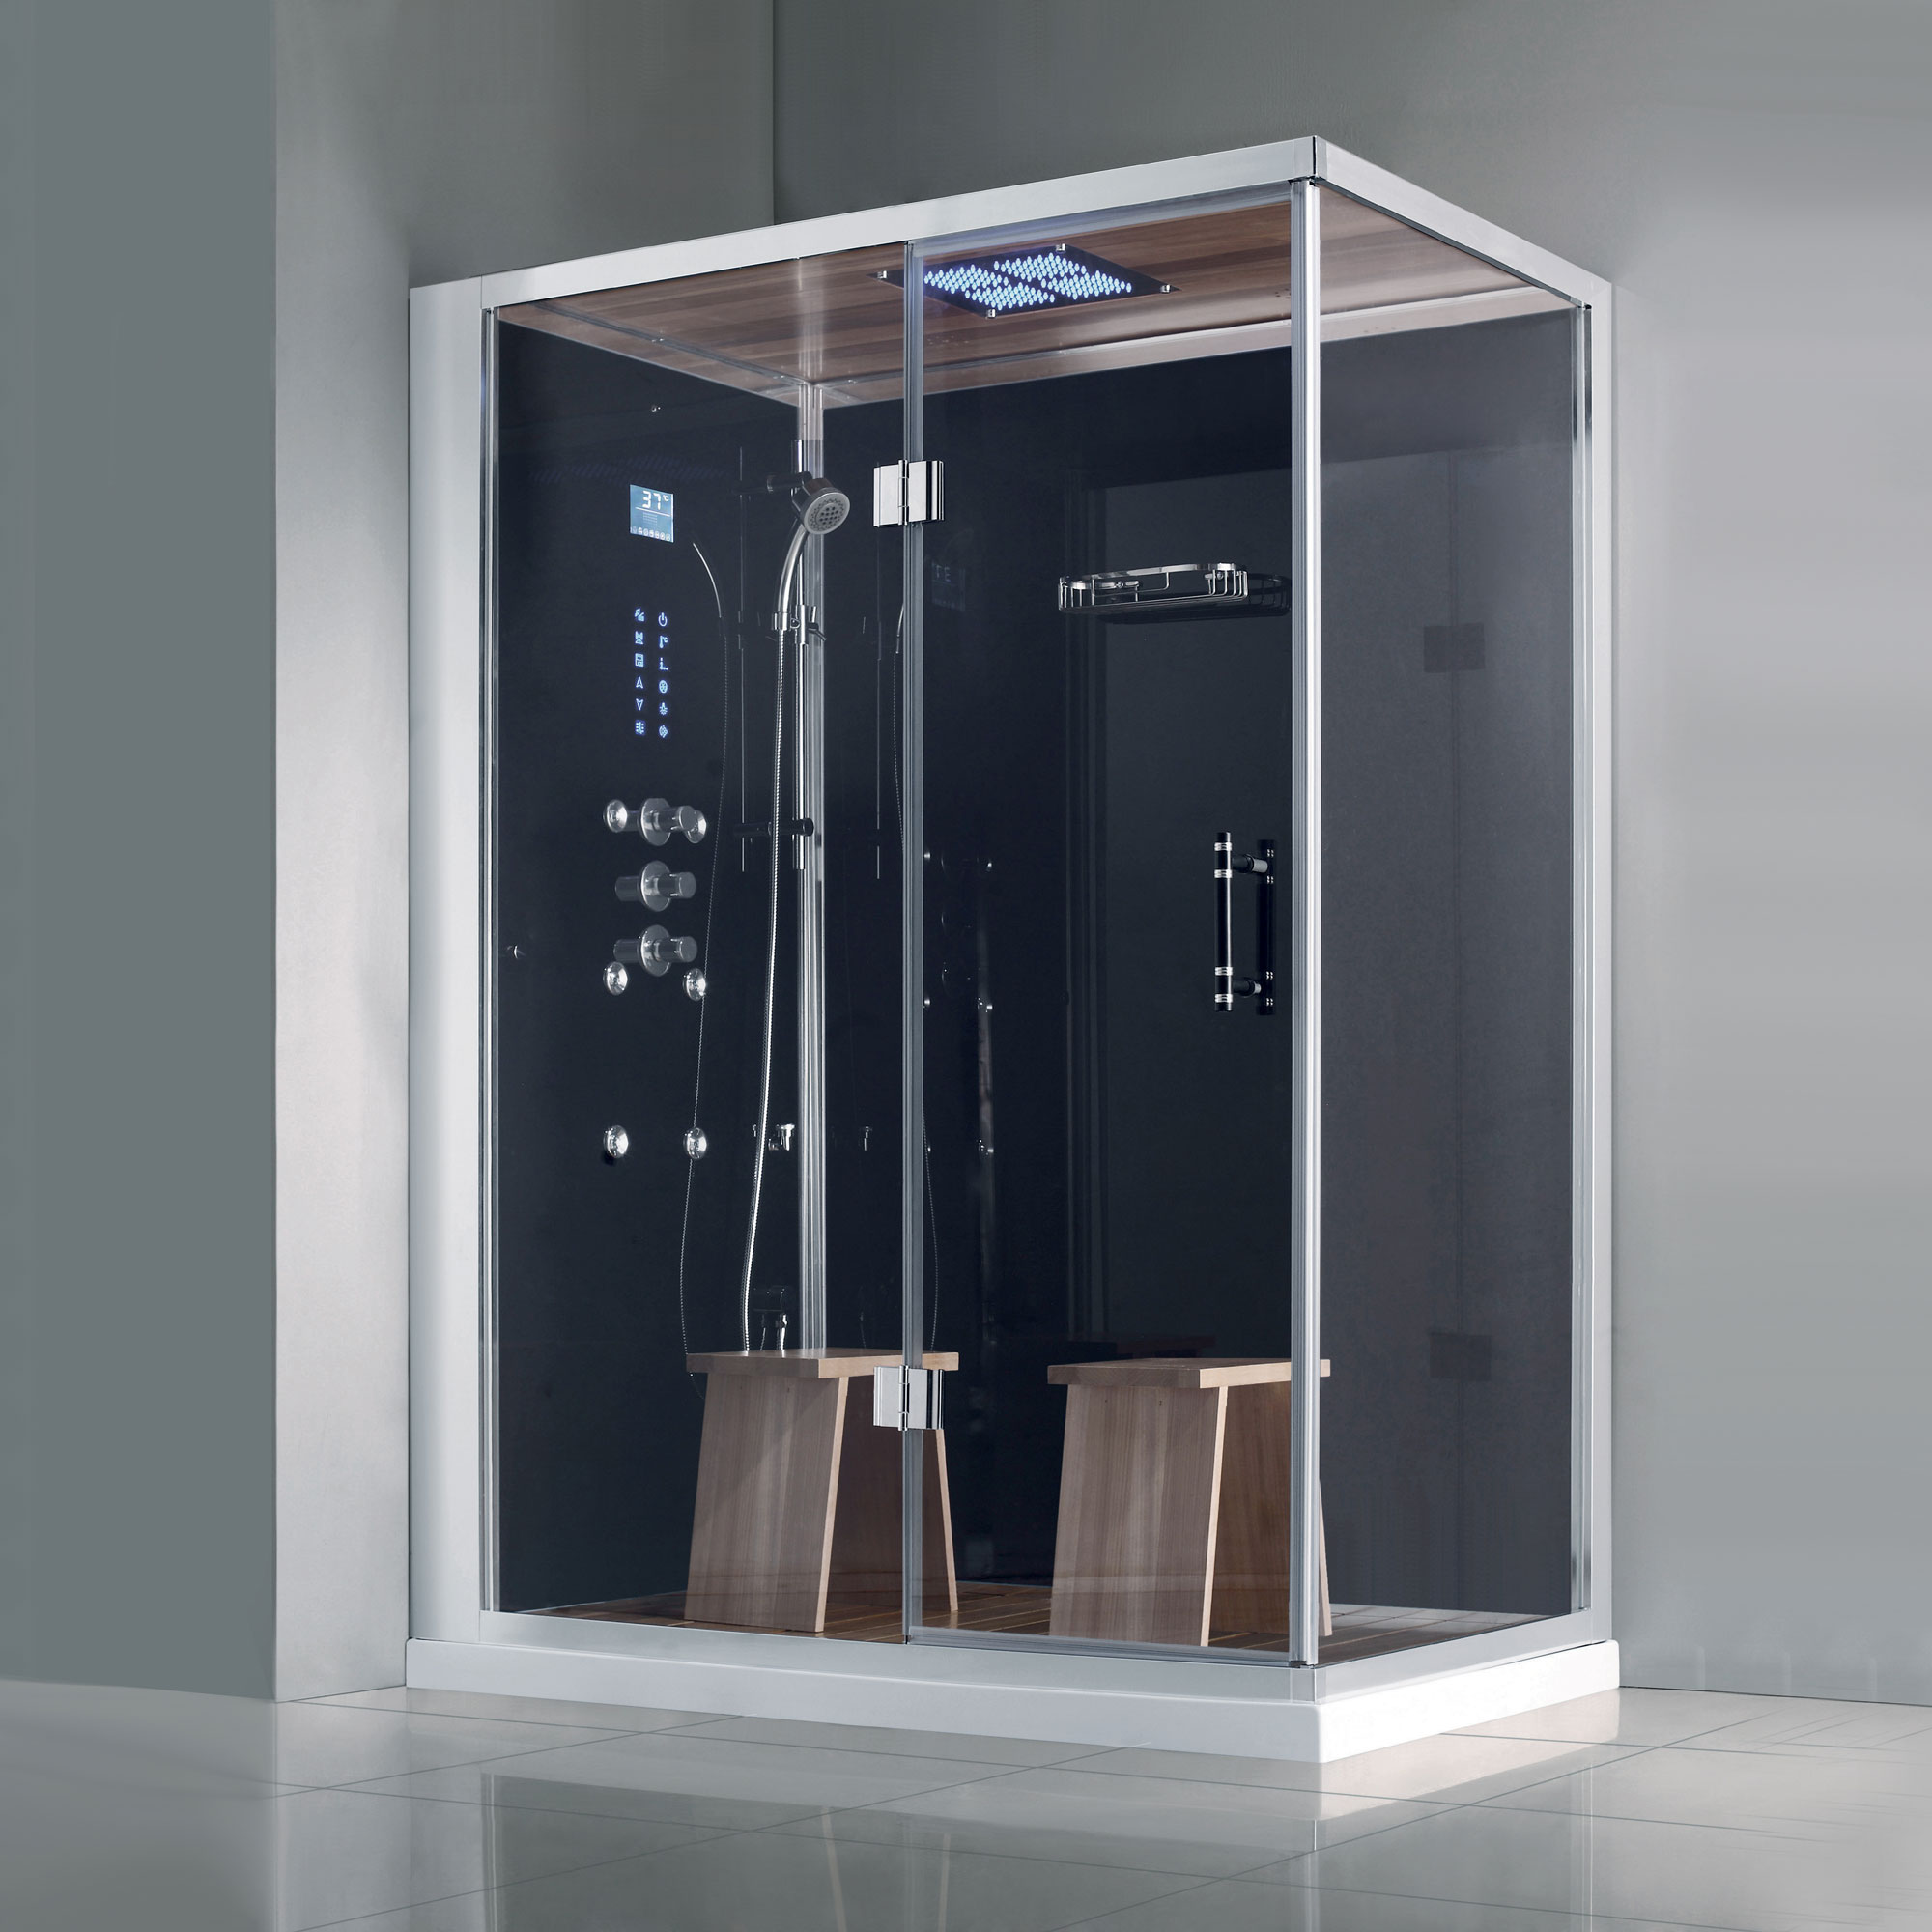 athena ws 141r steam shower